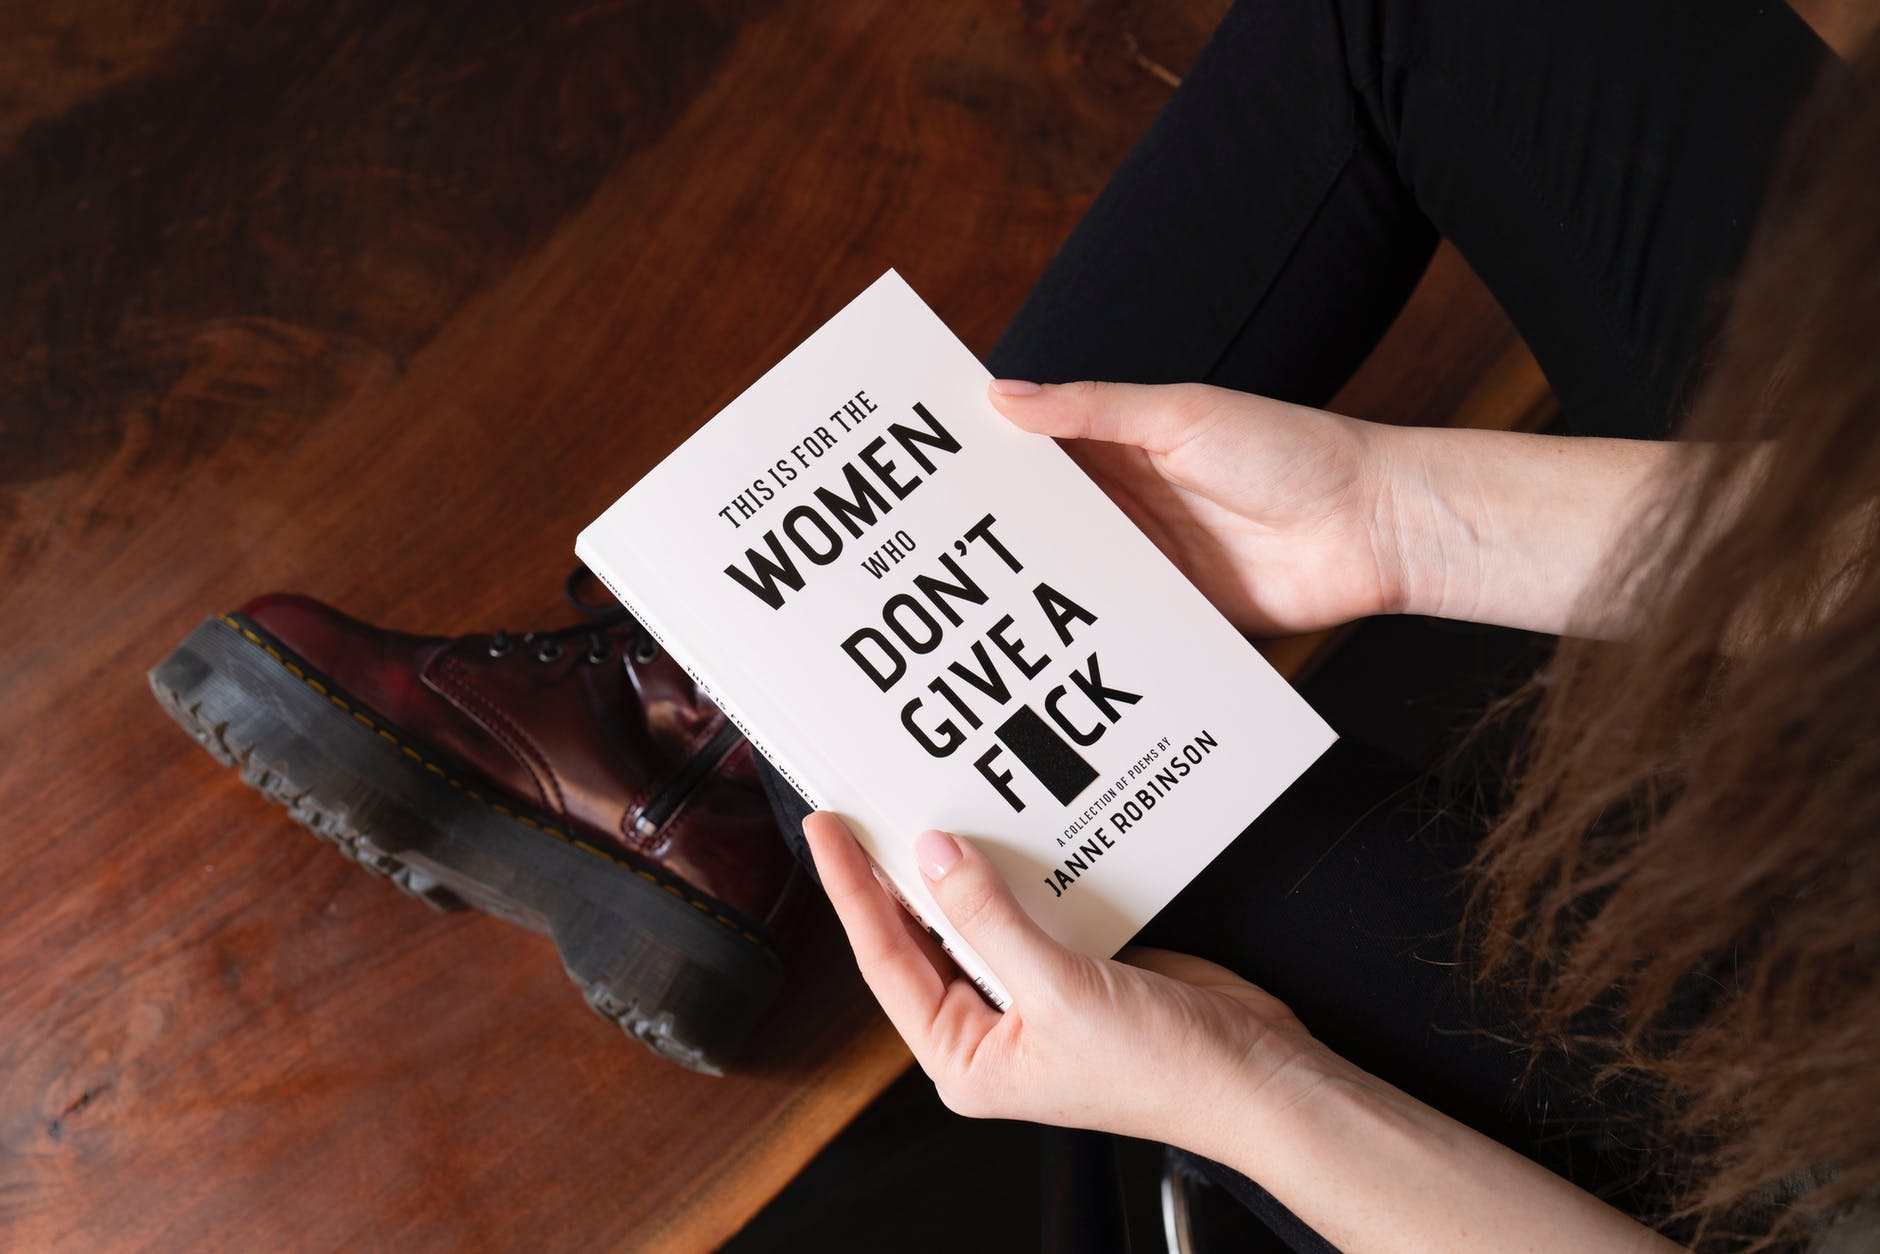 woman sitting holding a book